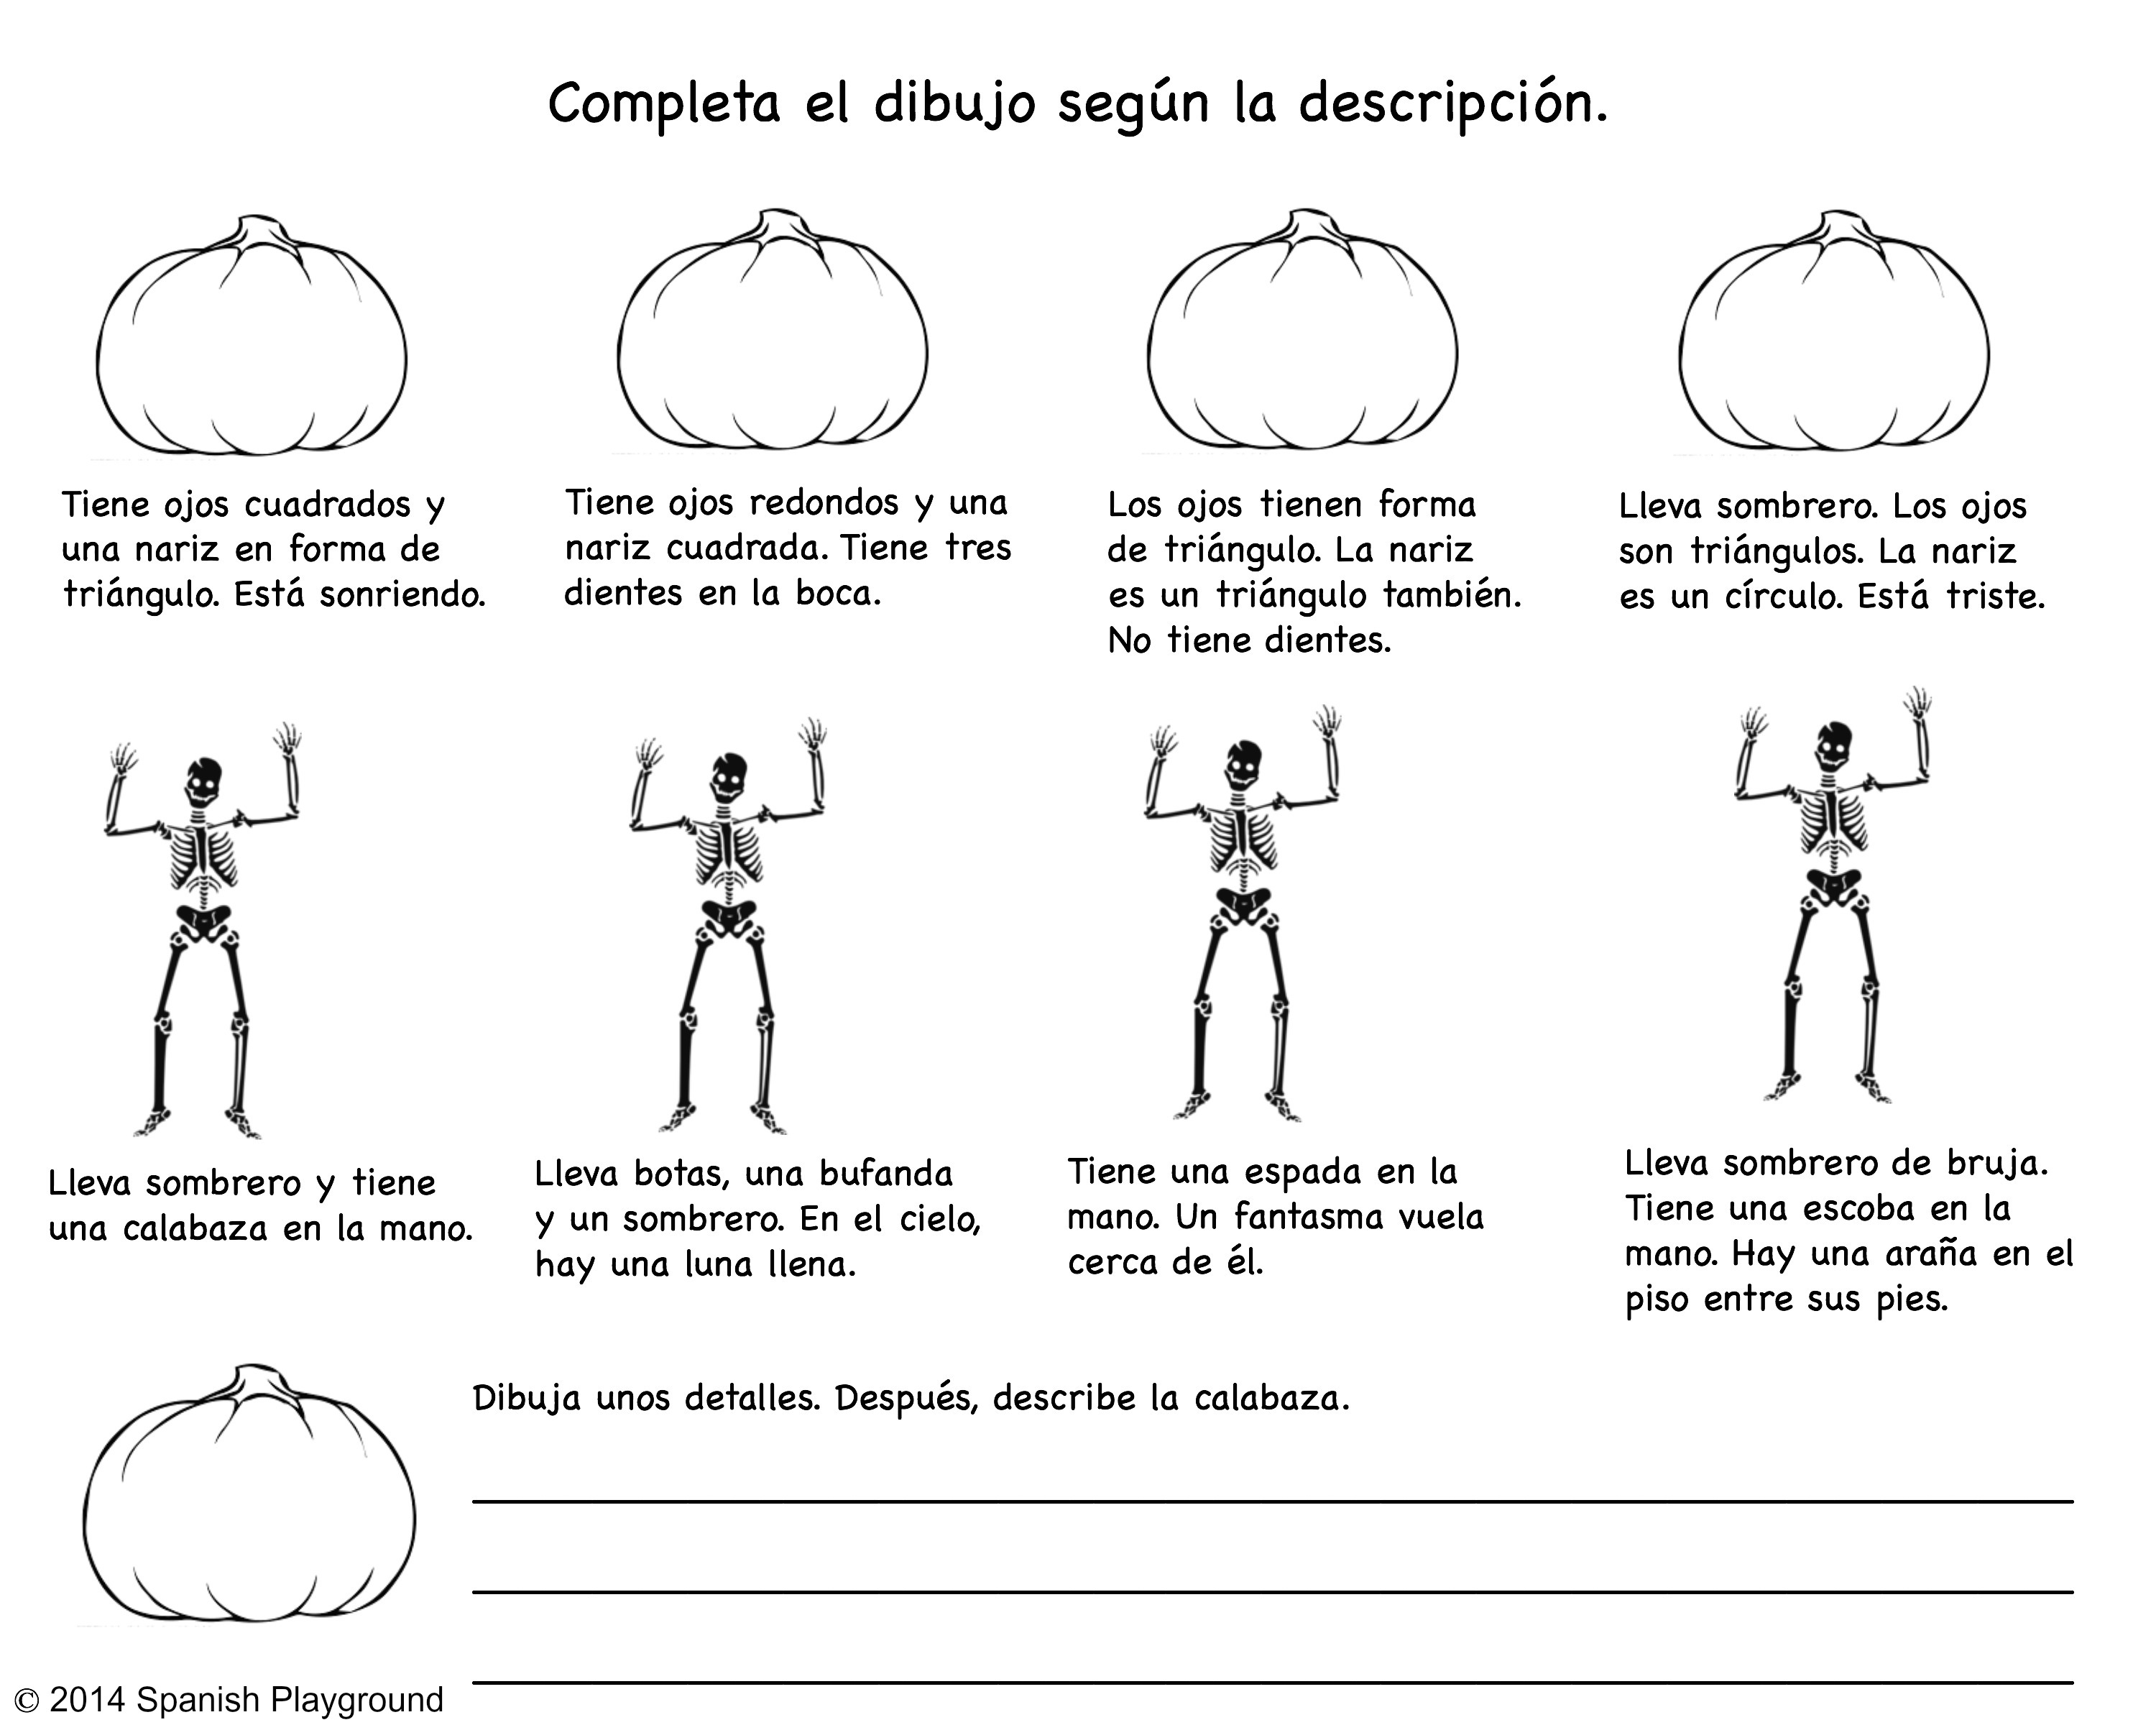 image regarding Halloween Printable identified as Spanish Halloween Read through-and-Attract Printable - Spanish Playground